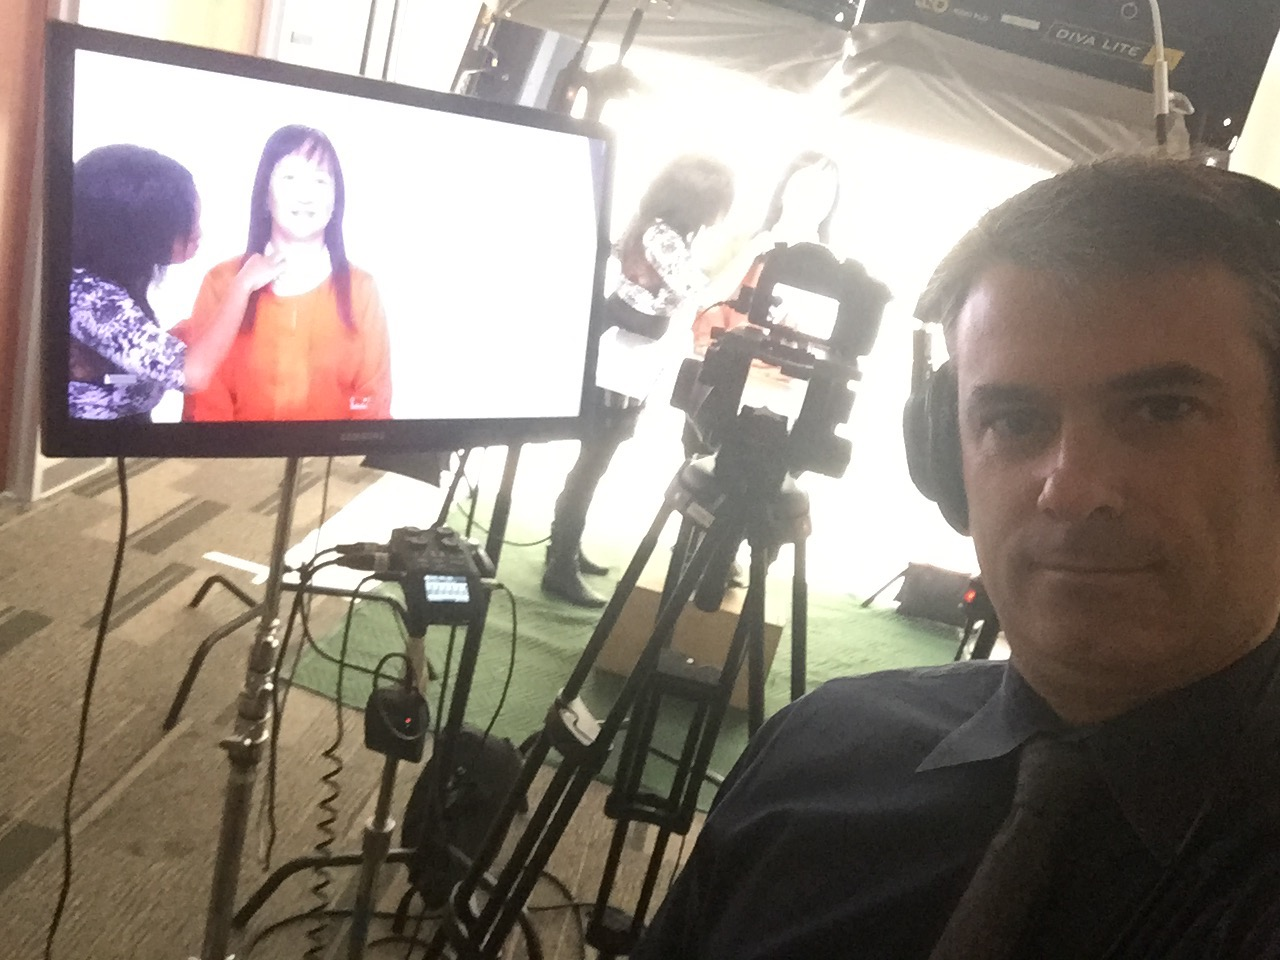 Patiently waiting for touch-ups while directing a NYL agent in Chicago. Spring 2016.